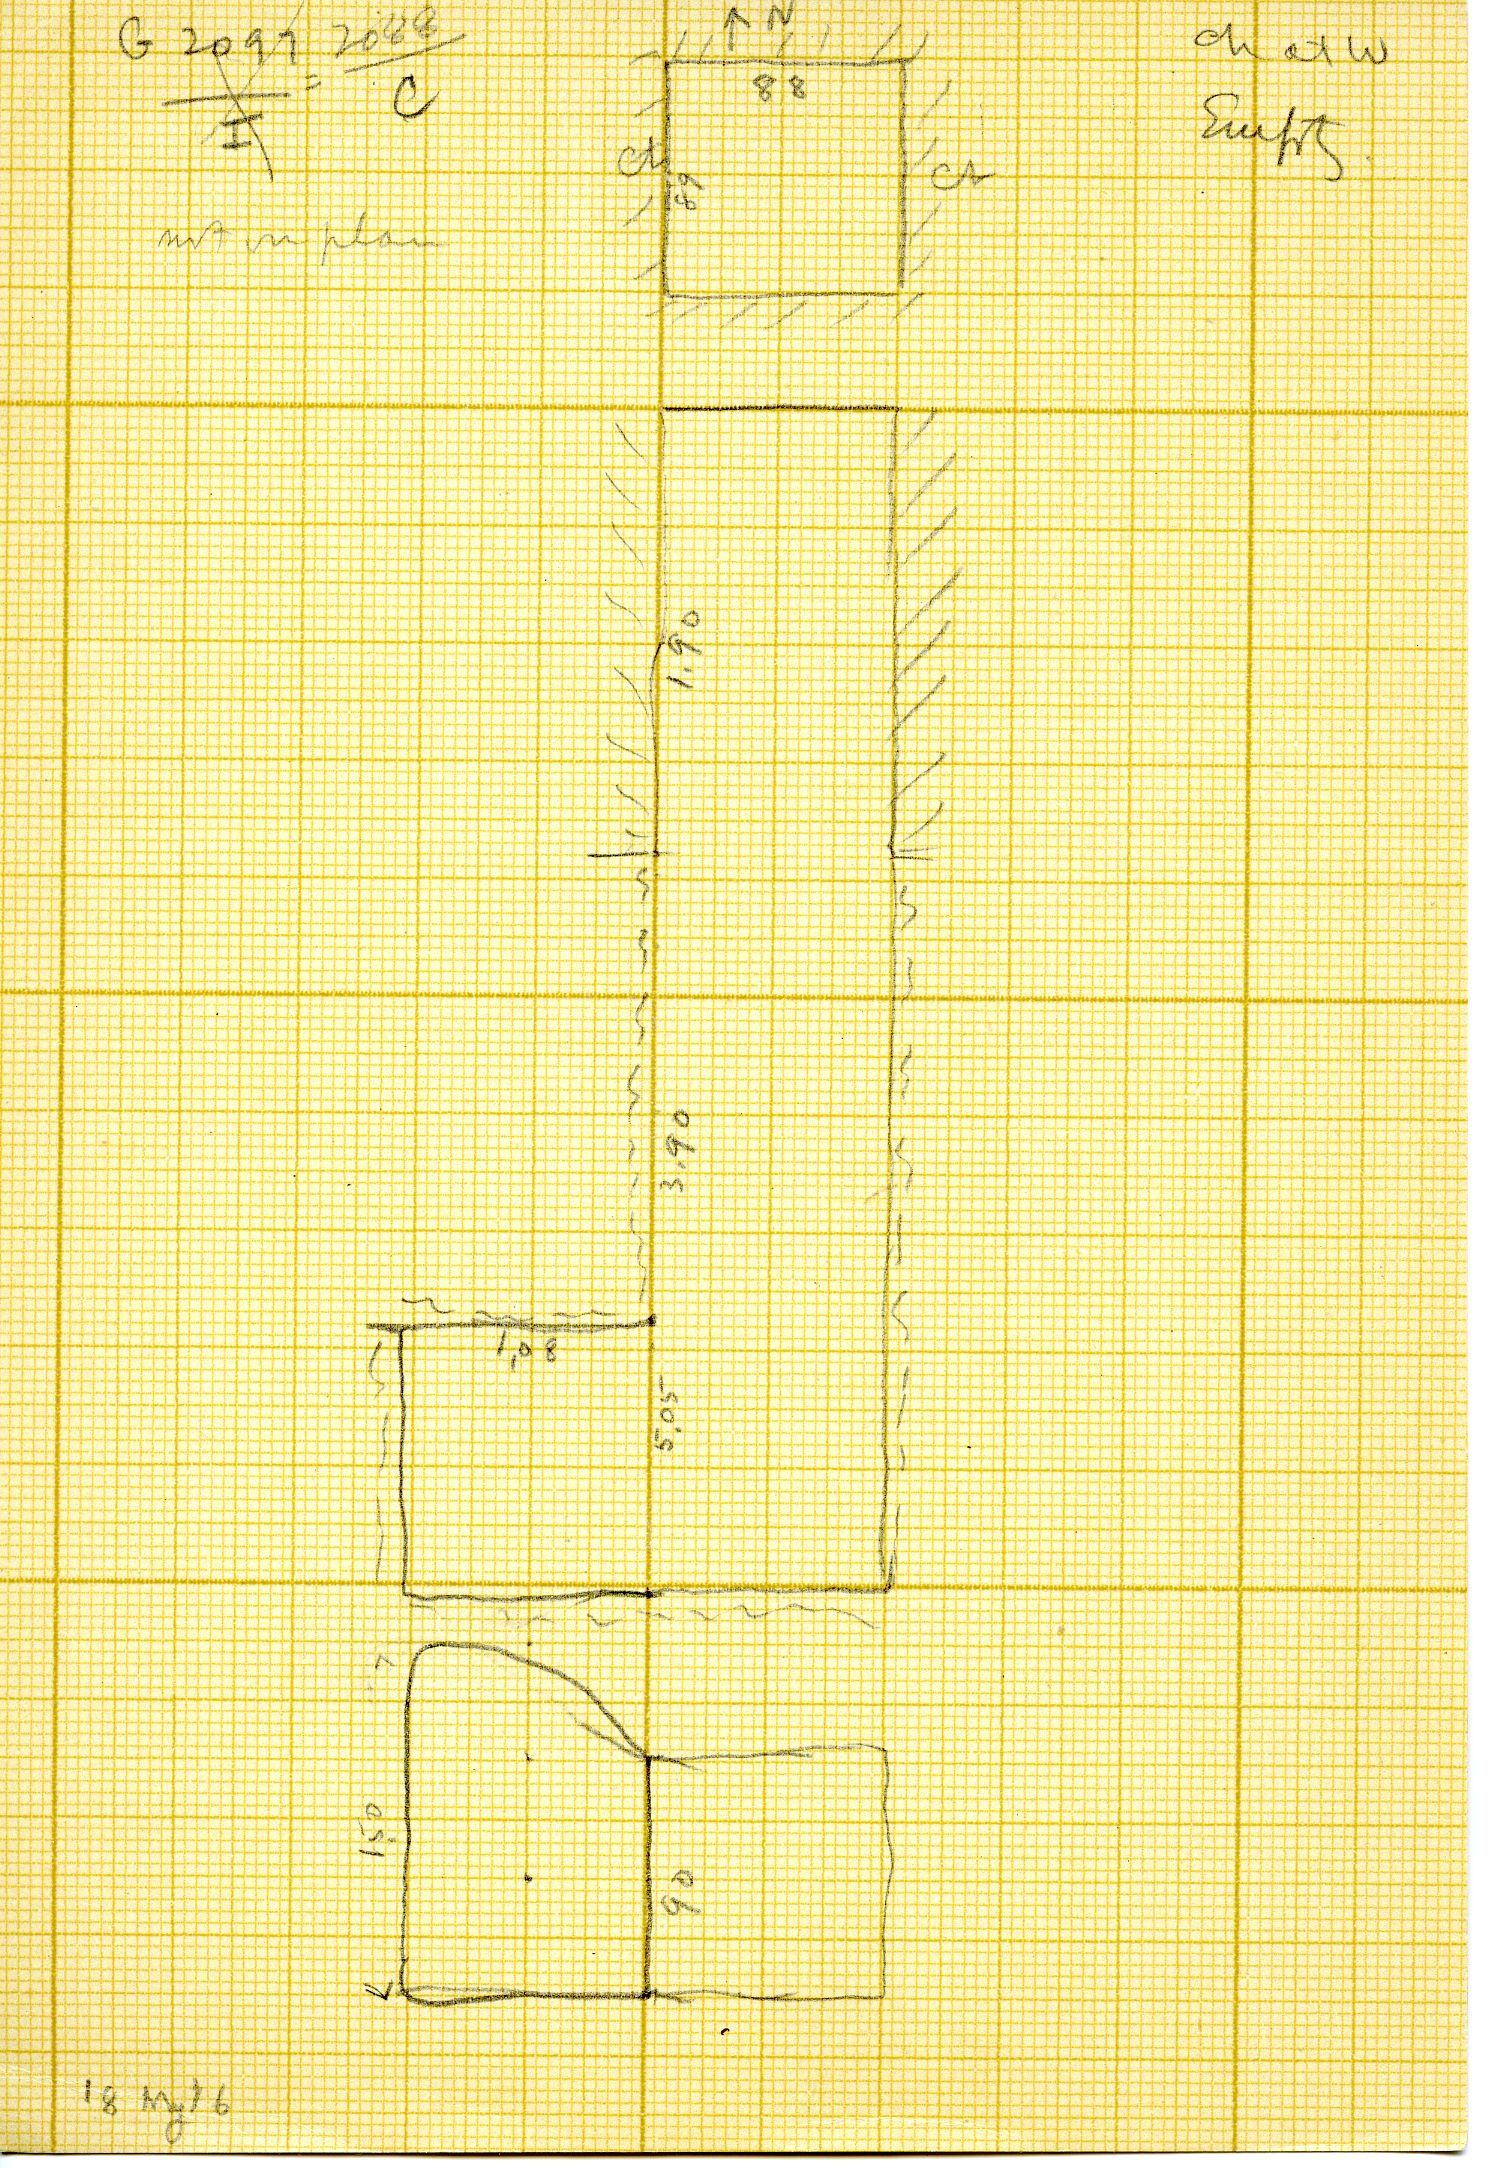 Maps and plans: G 3088, Shaft C